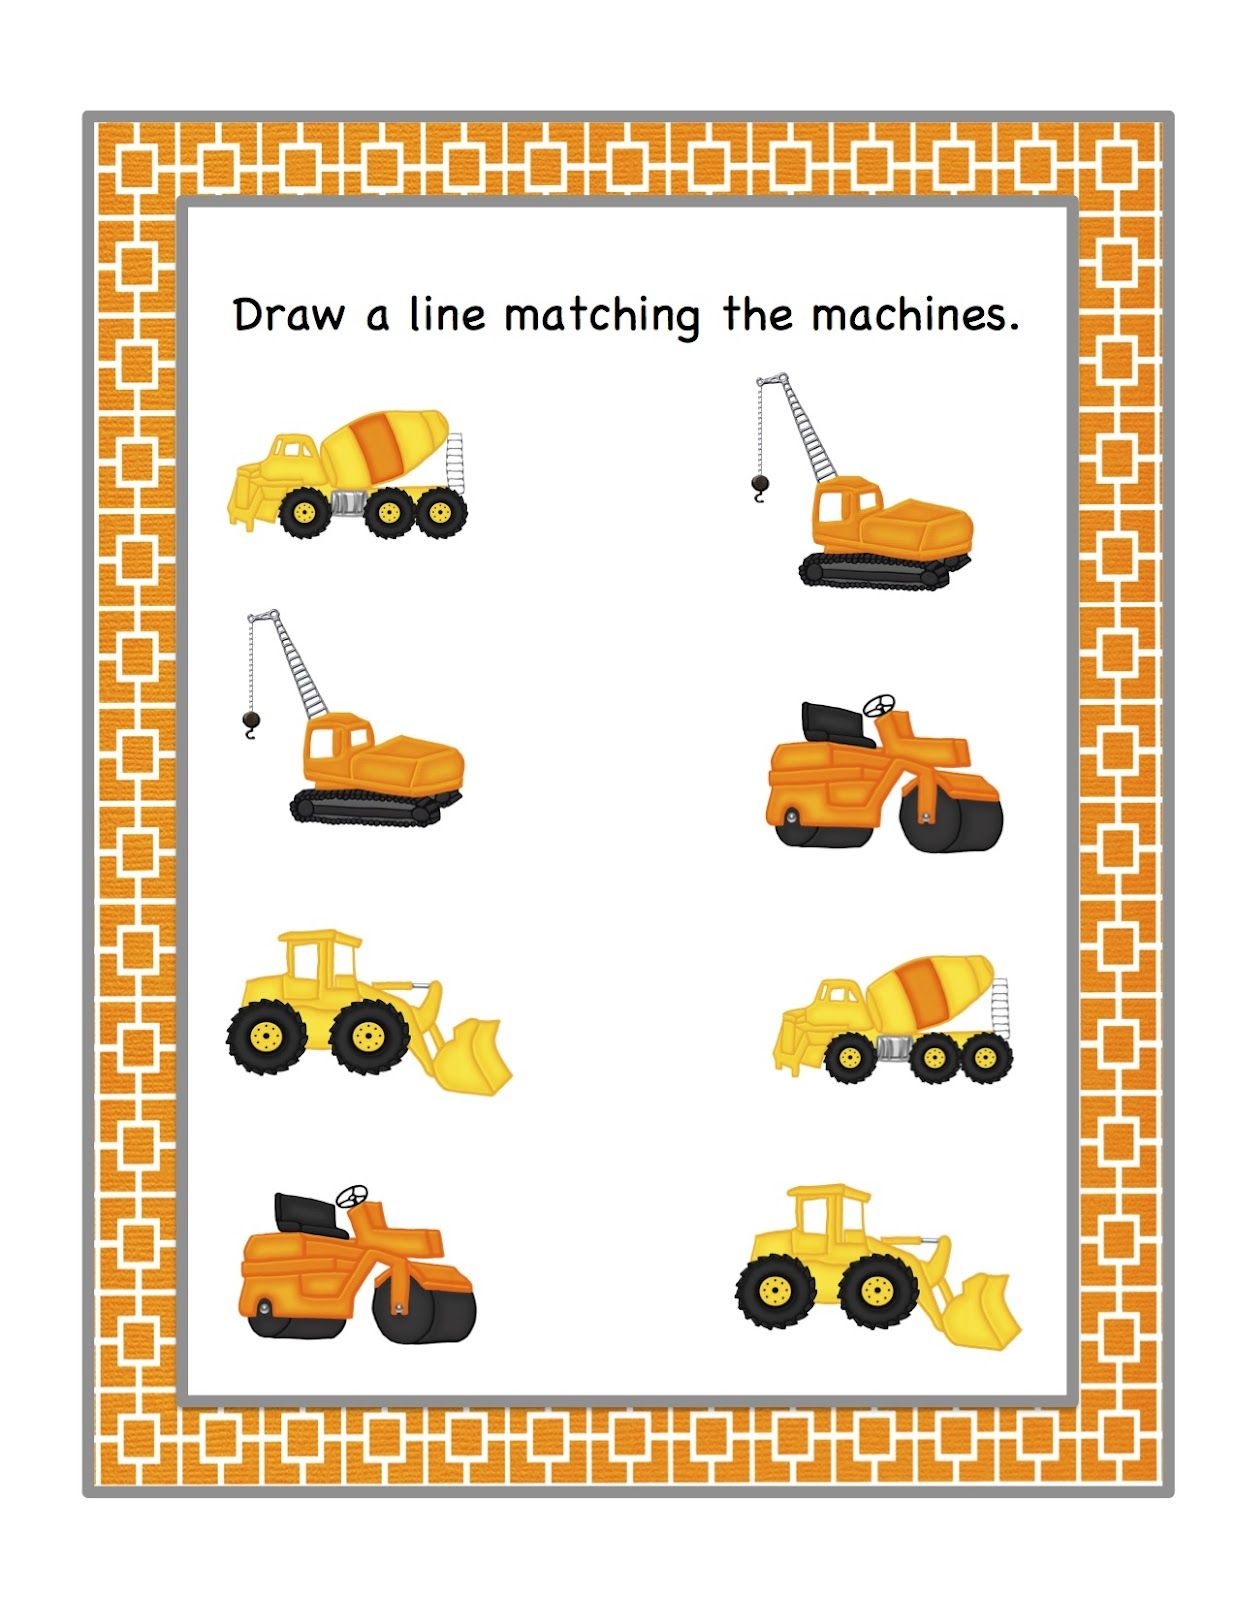 Const Match Machines 1 236 1 600 Pixels